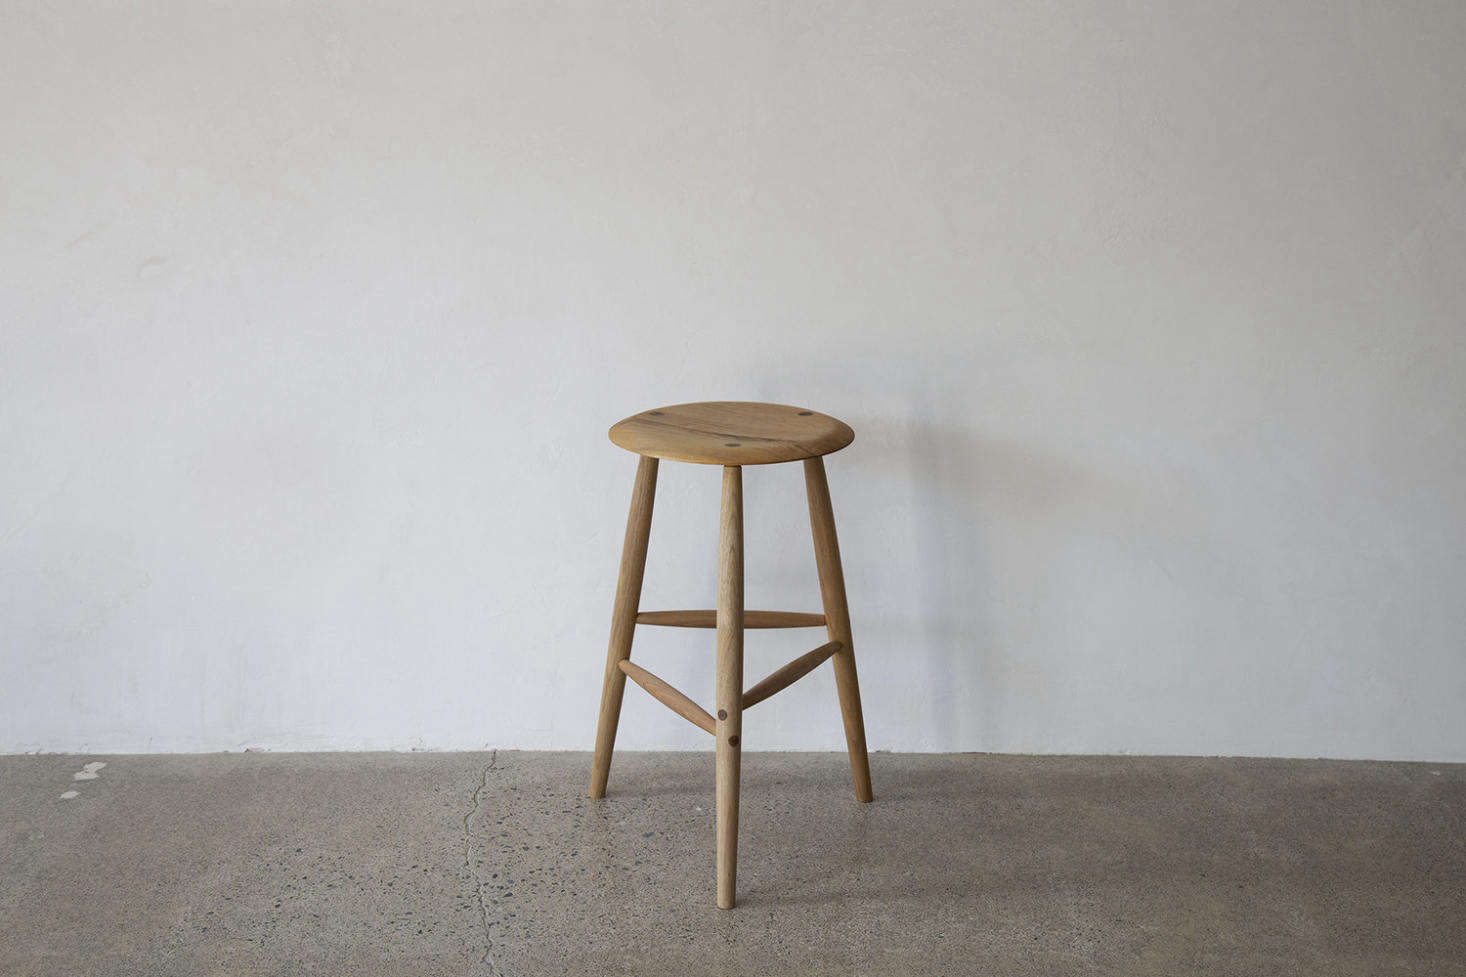 In lieu of a side table, consider an elegant-rustic Tall Stool by Sawkille; from $src=